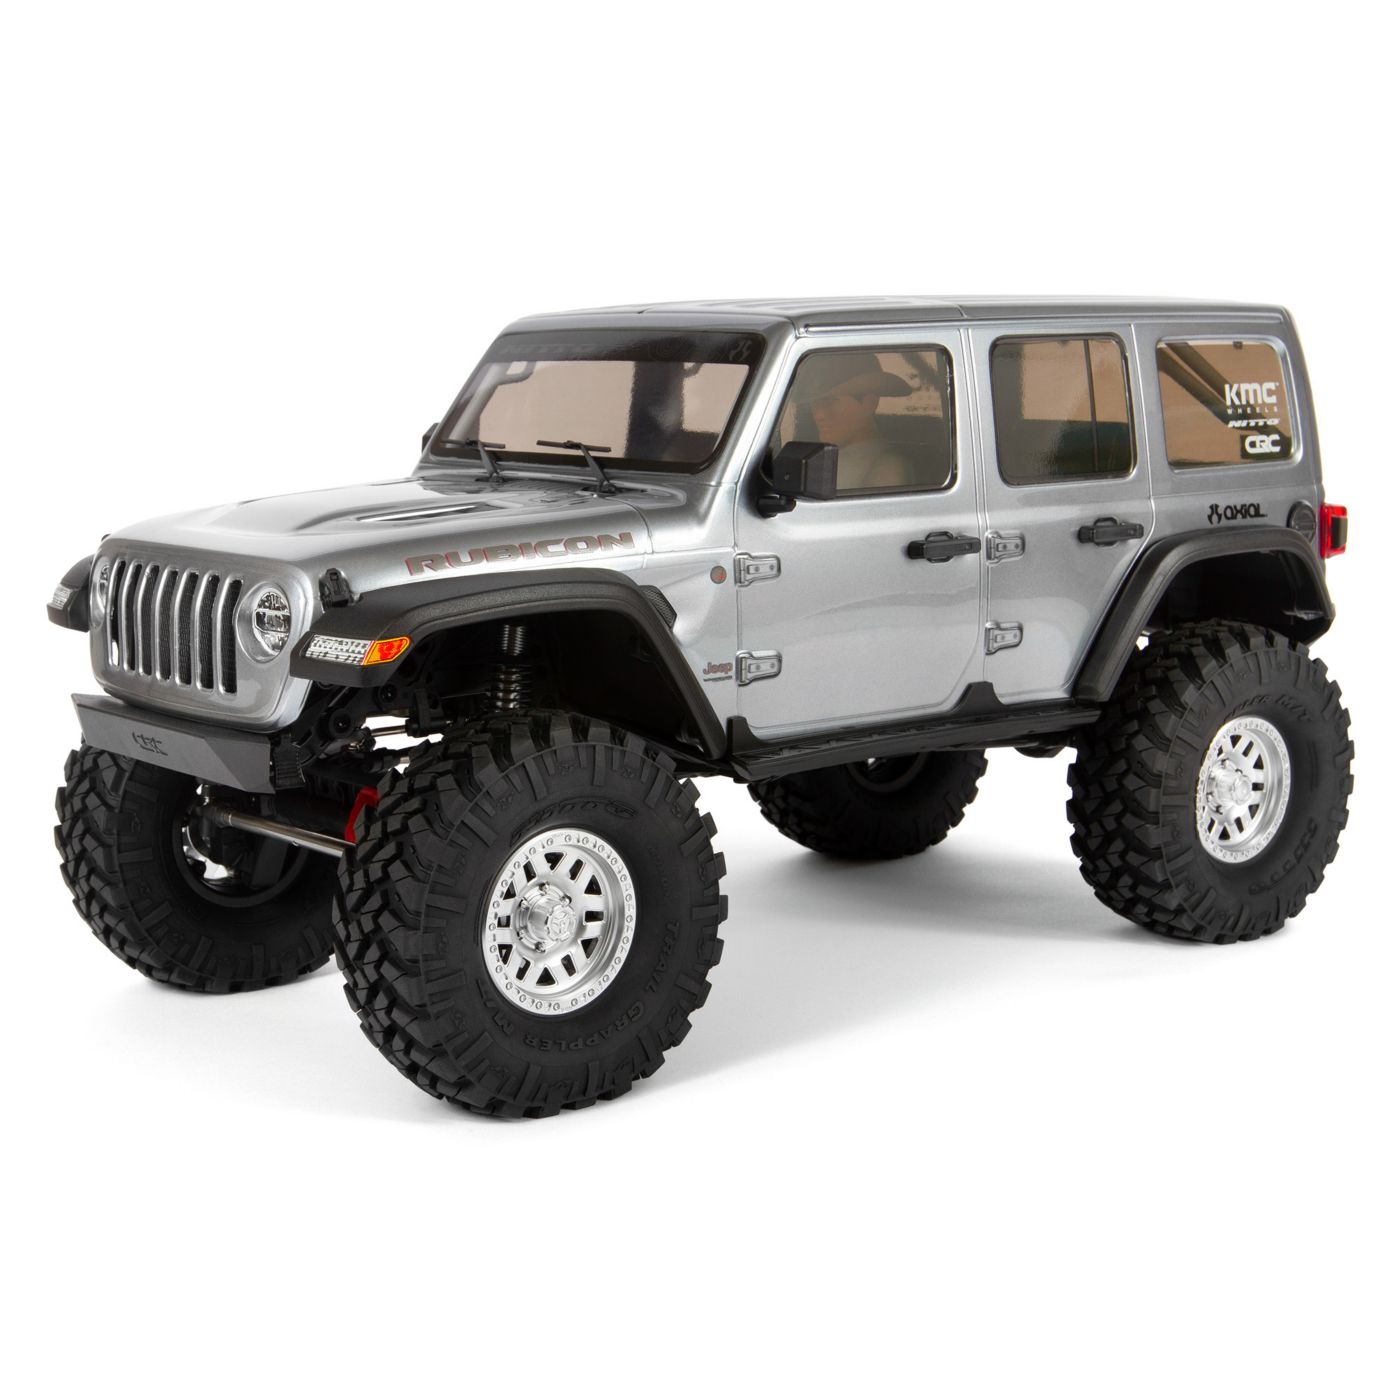 A Jam-packed Jeep: Axial Releases the SCX10 III Jeep Wrangler Rubicon JLU Kit